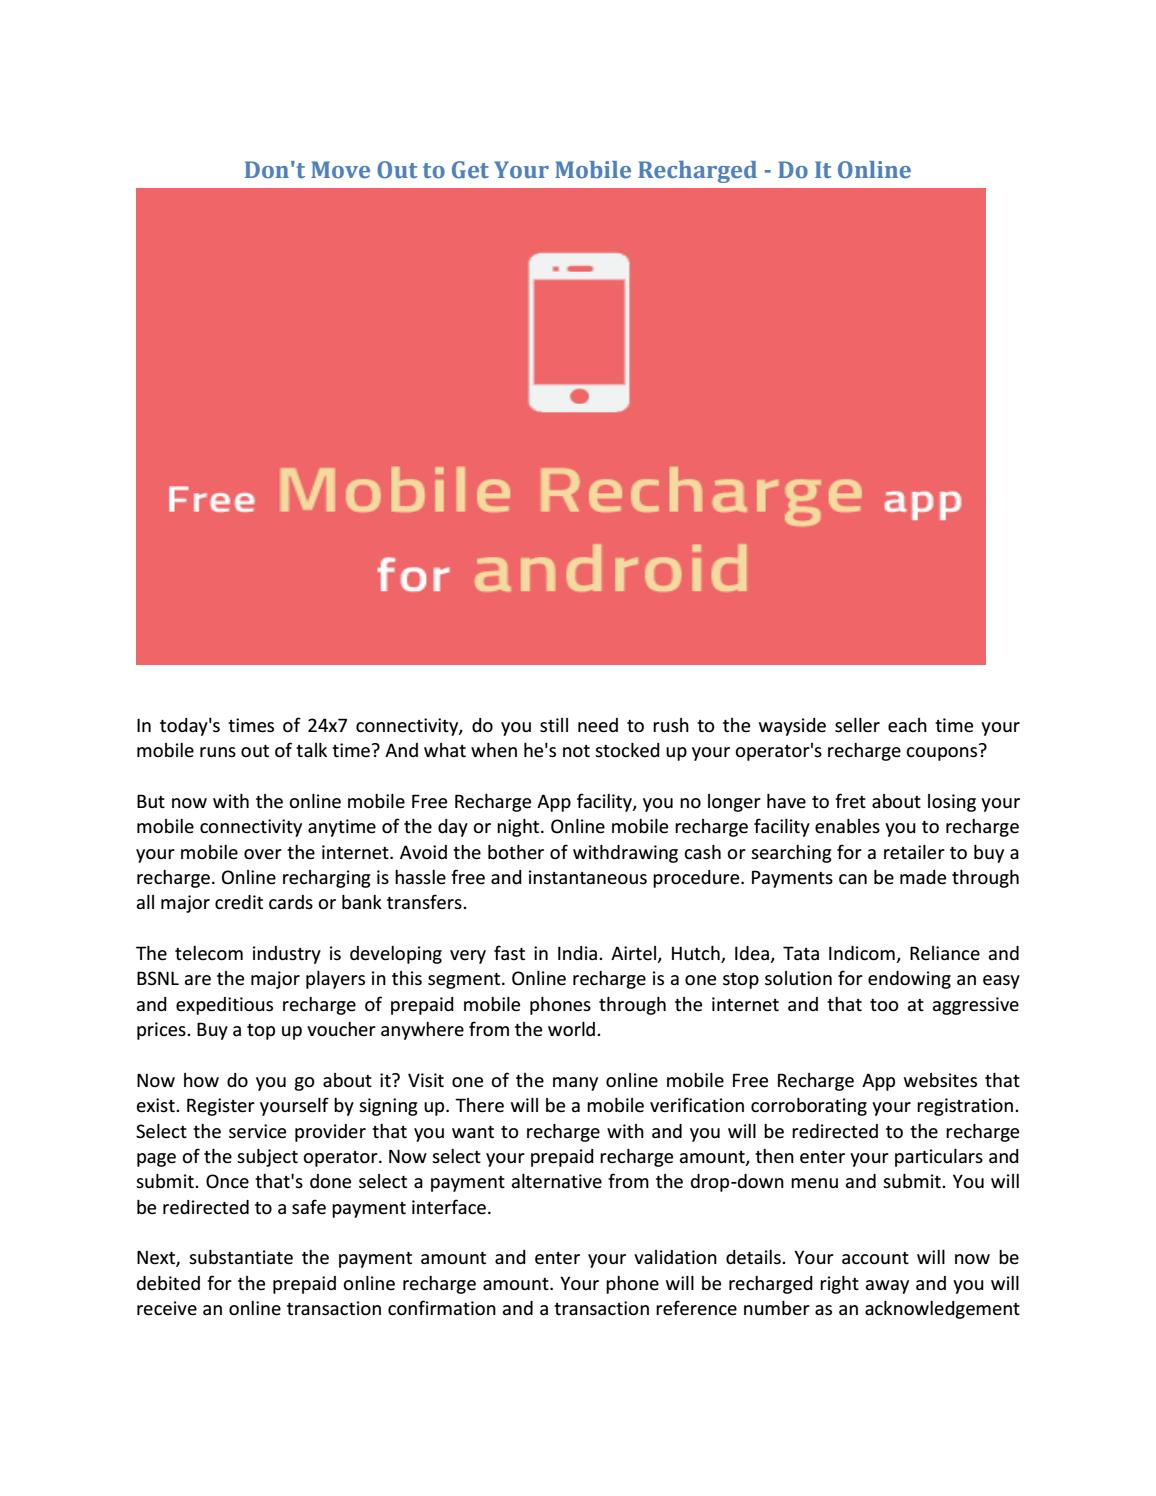 Don't Move Out to Get Your Mobile Recharged - Do It Online